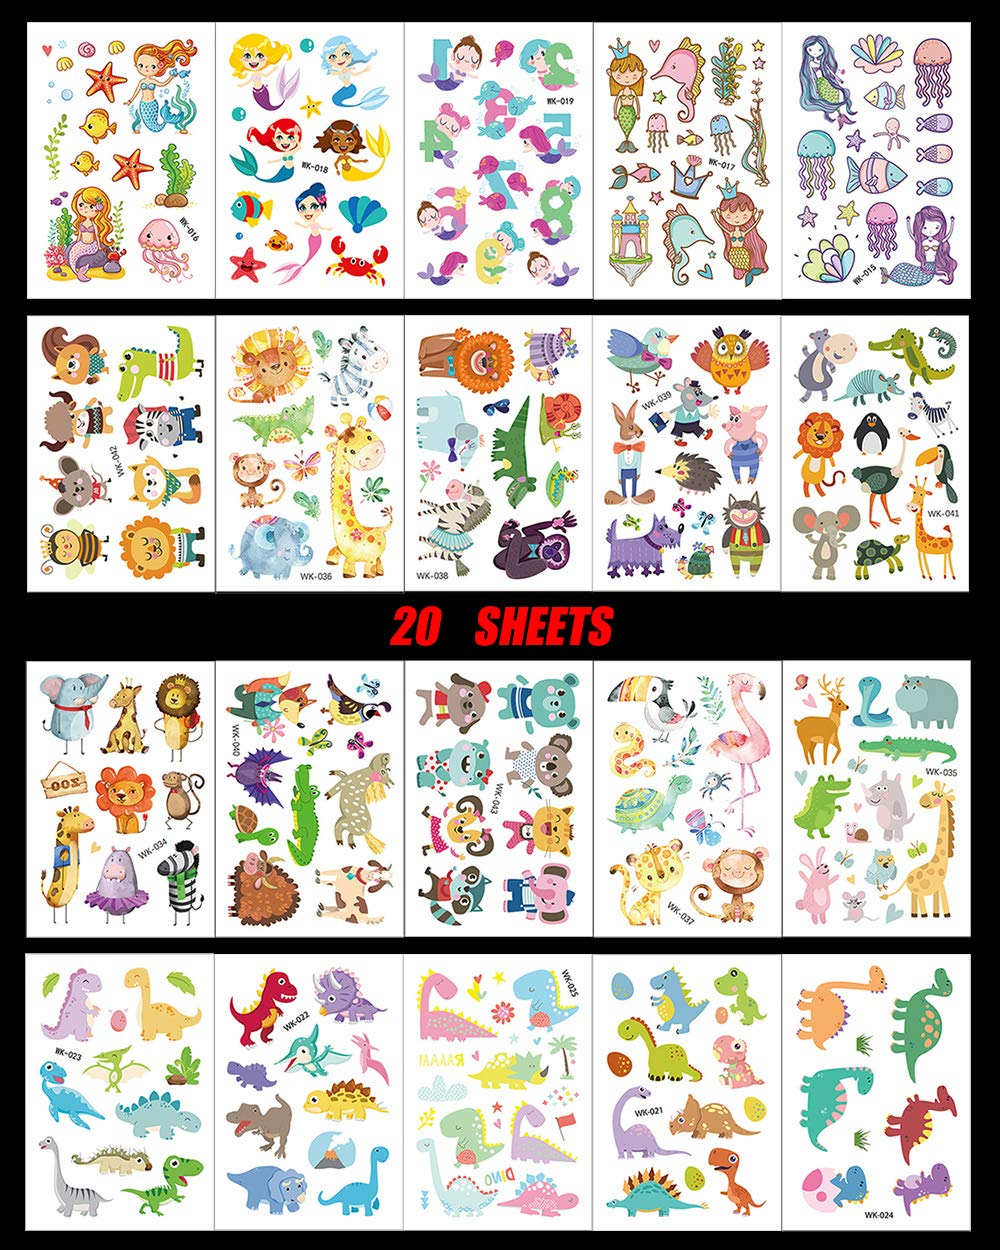 de33b1374 Amazon.com : Cute Zoo Animal Temporary Tattoos for Kids 20 Sheets Small  Fake Tattoo Stickers with 200+ Cute Patterns of Dinosaur Mermaid Dog Cat  Lion Bird ...